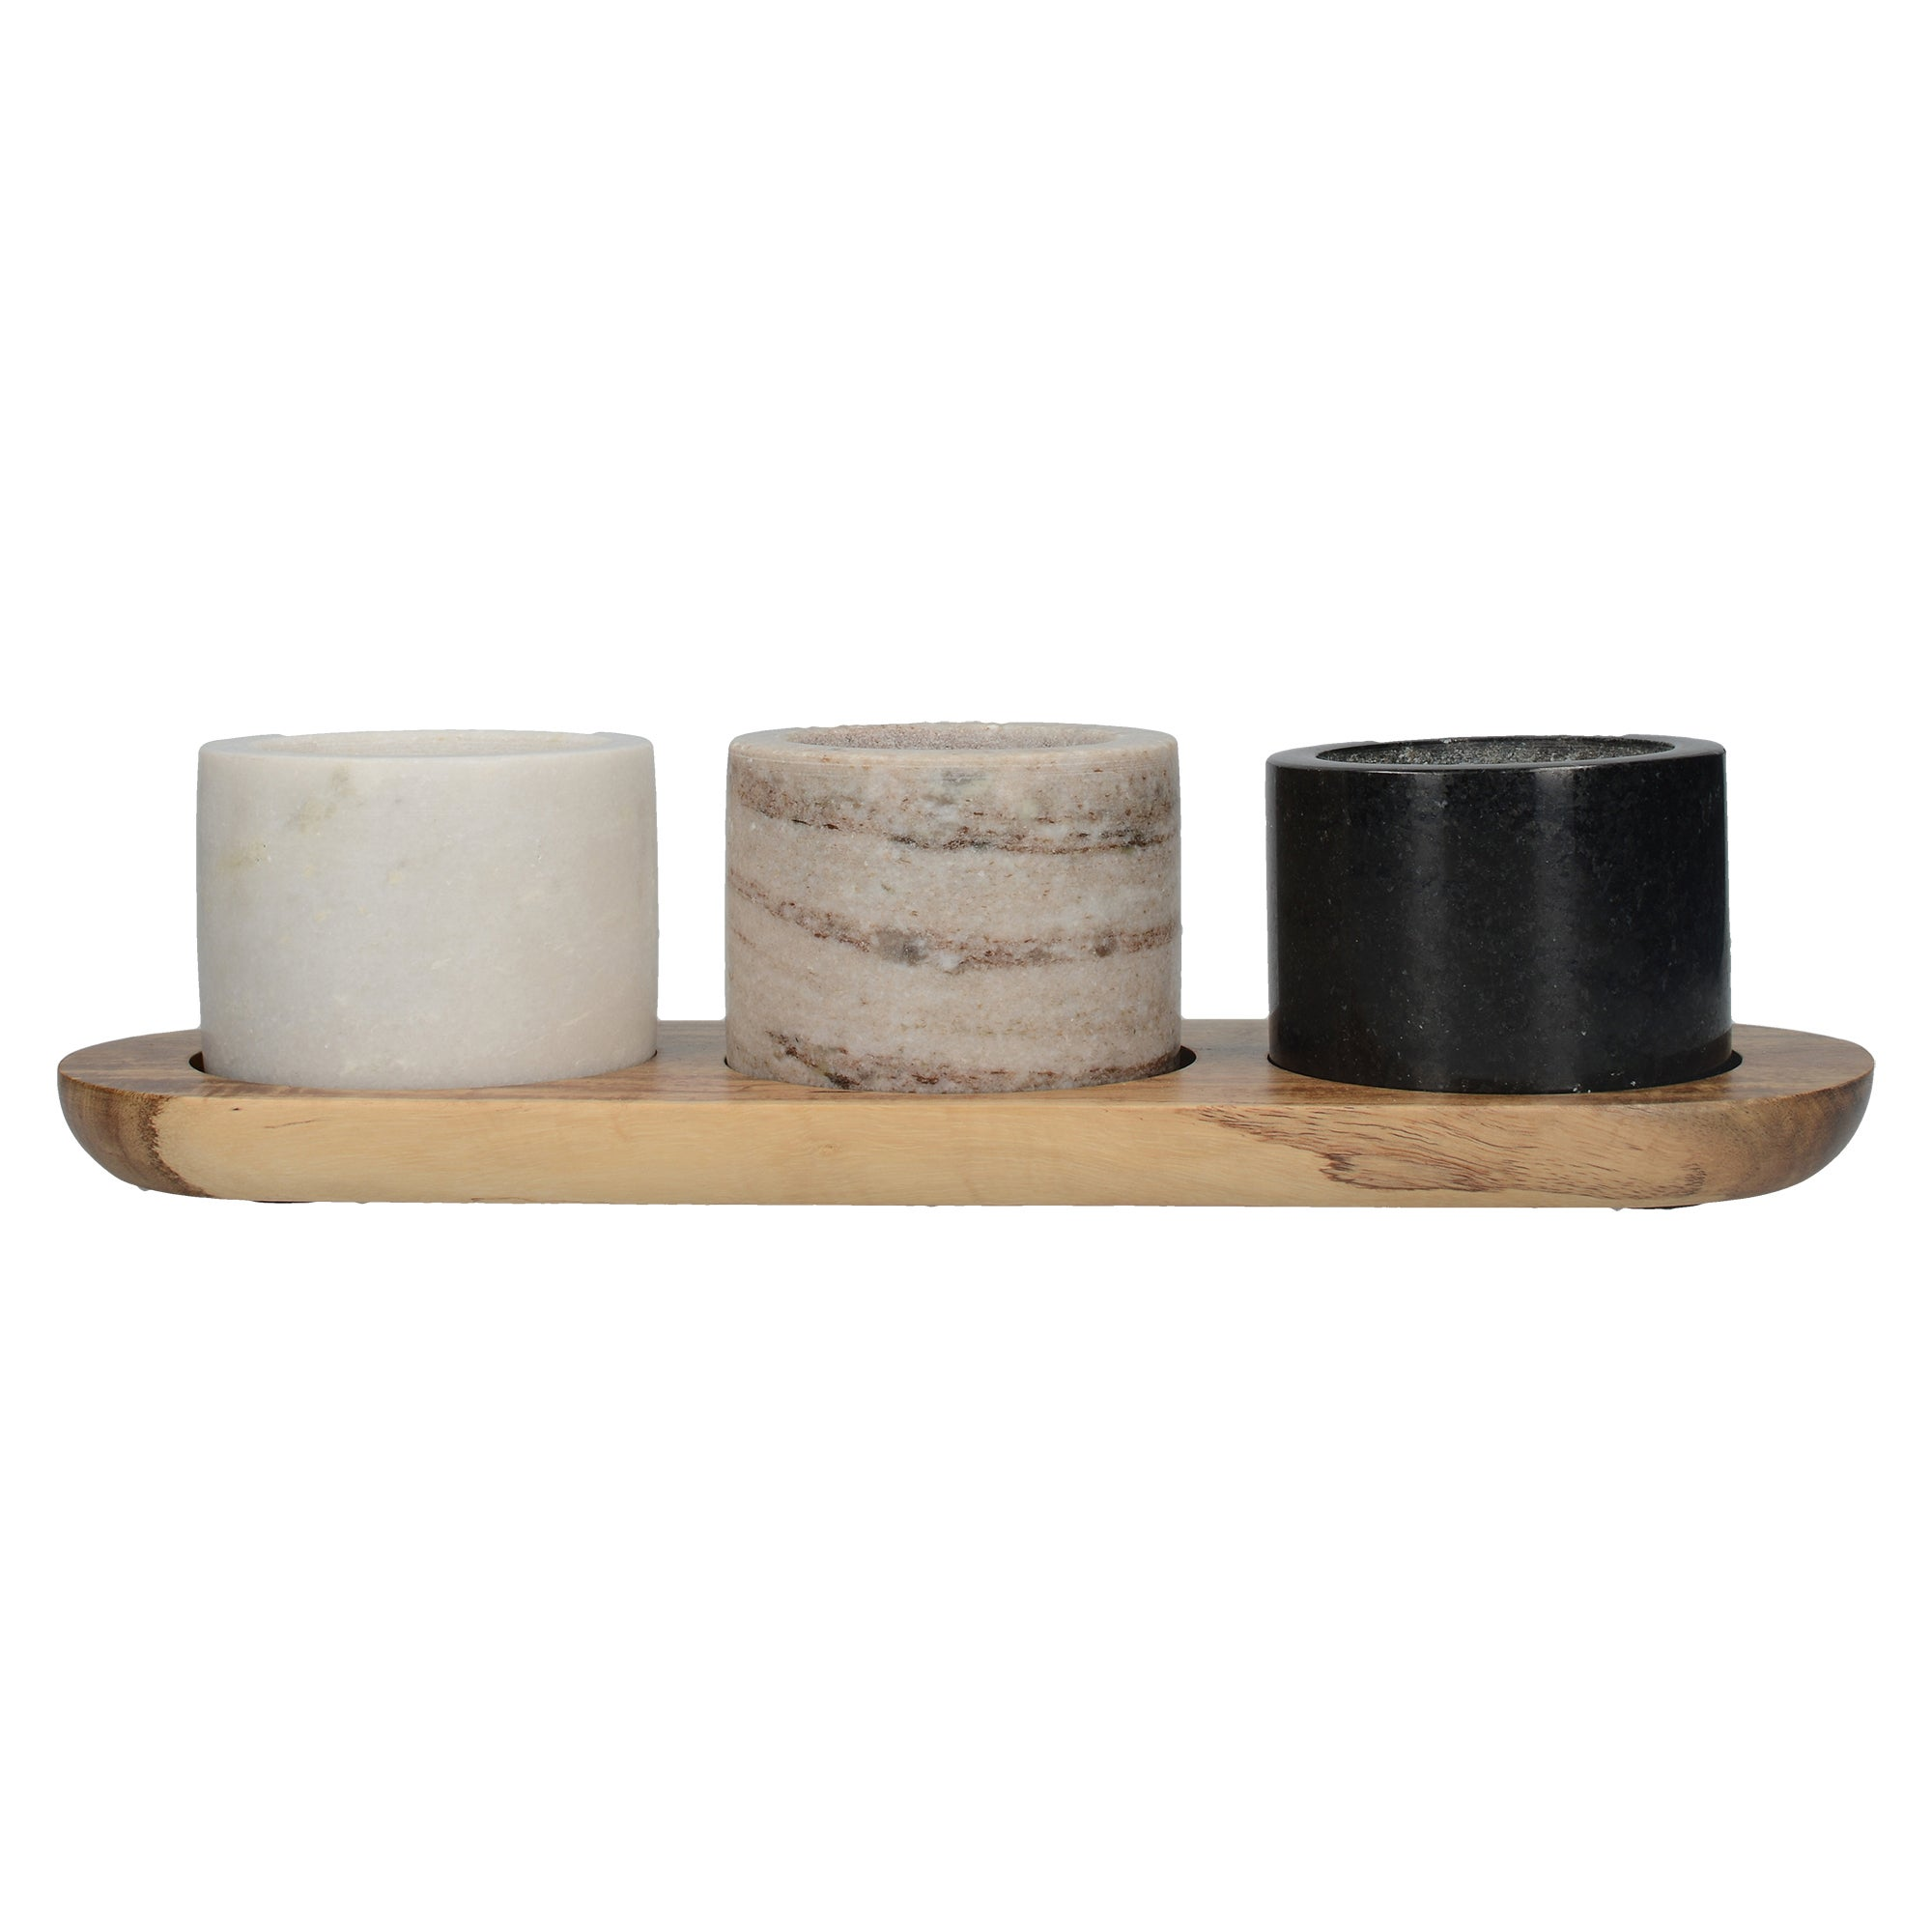 Image of 3 Piece Marble Dishes & Board Set Natural